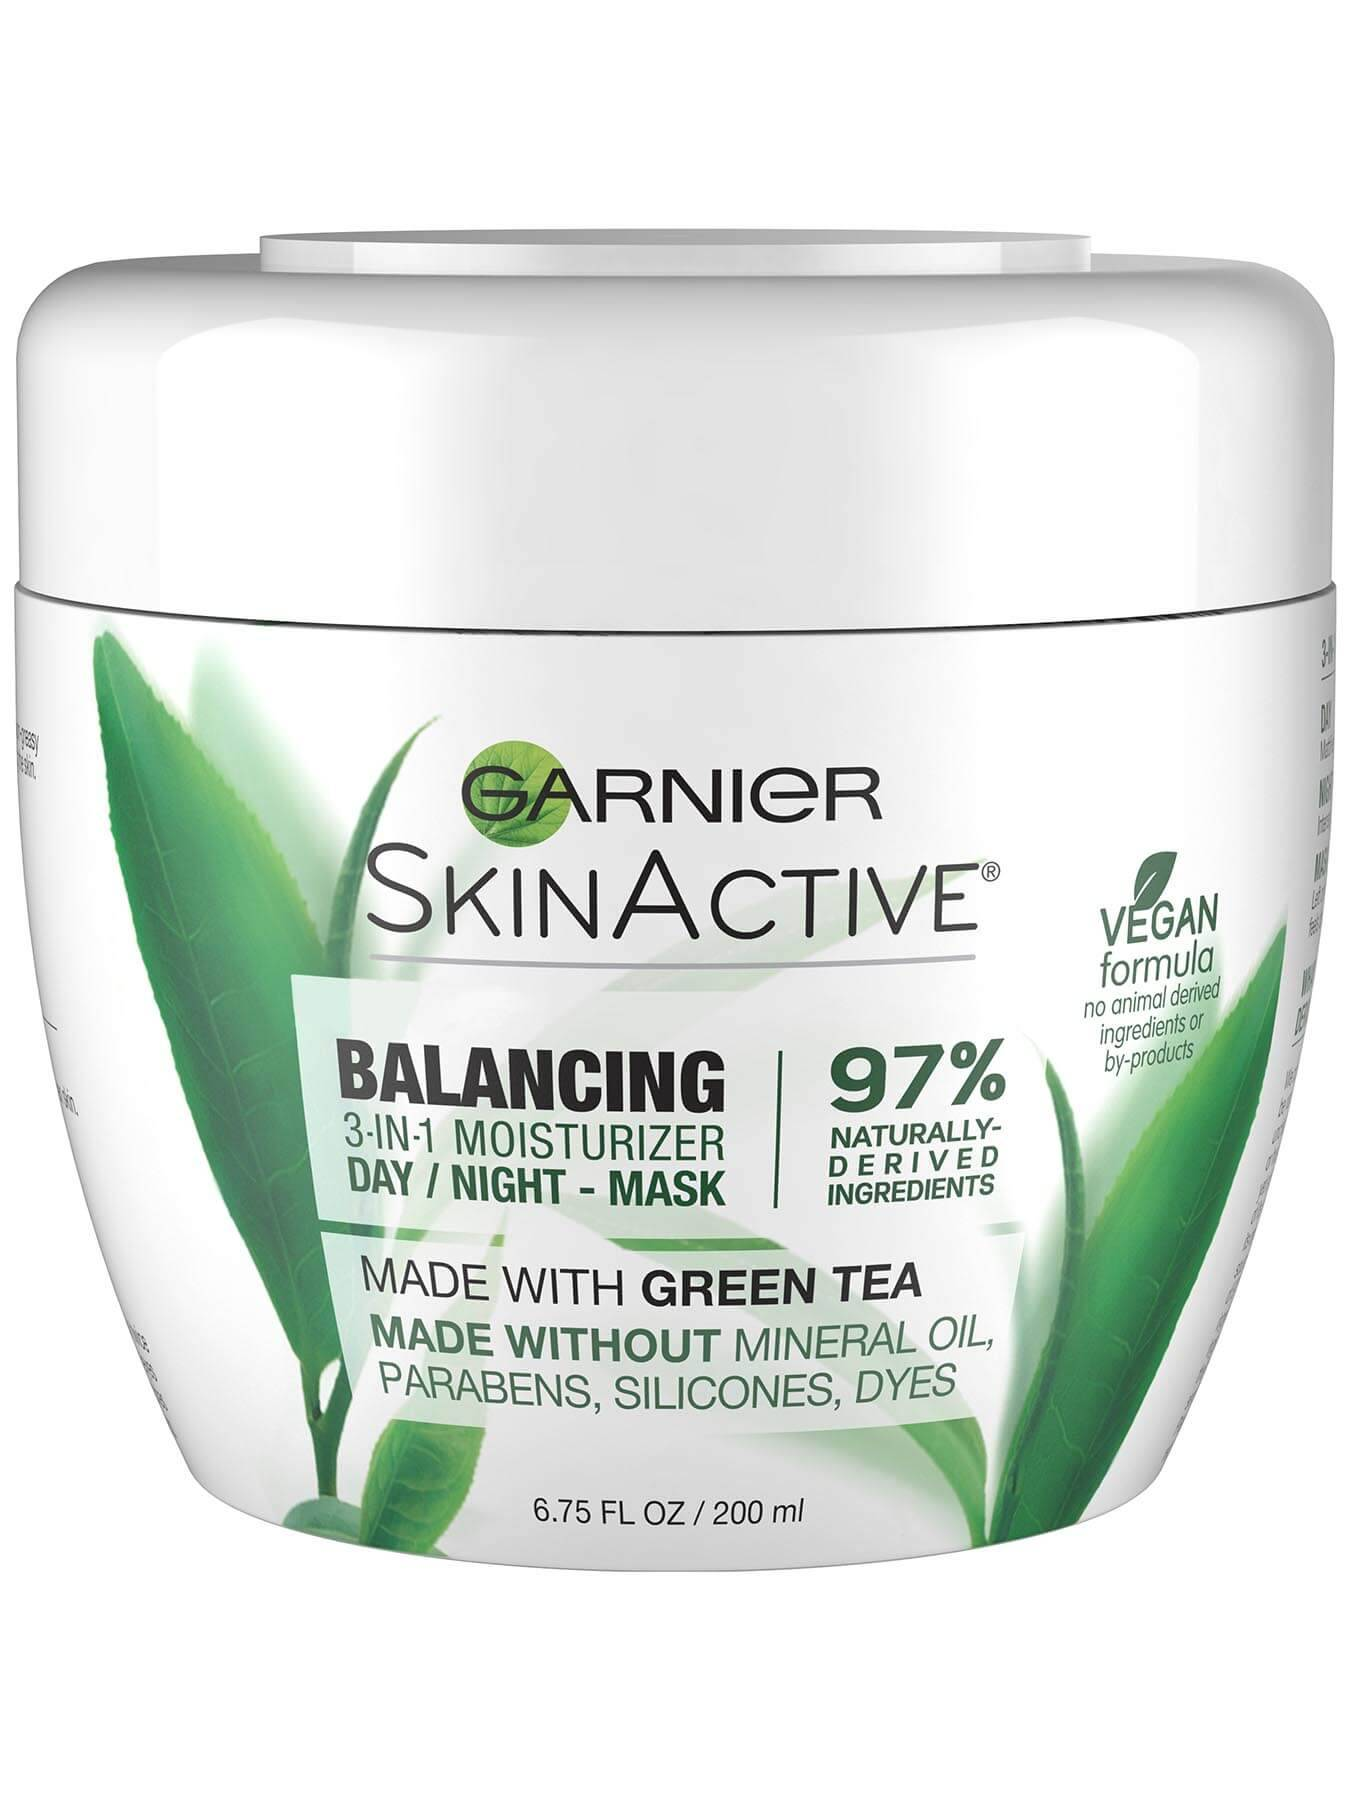 Garnier SkinActive Balancing 3-in-1 Face Moisturizer with Green Tea - 3-in-1 Moisturizer- Day, Night, Mask